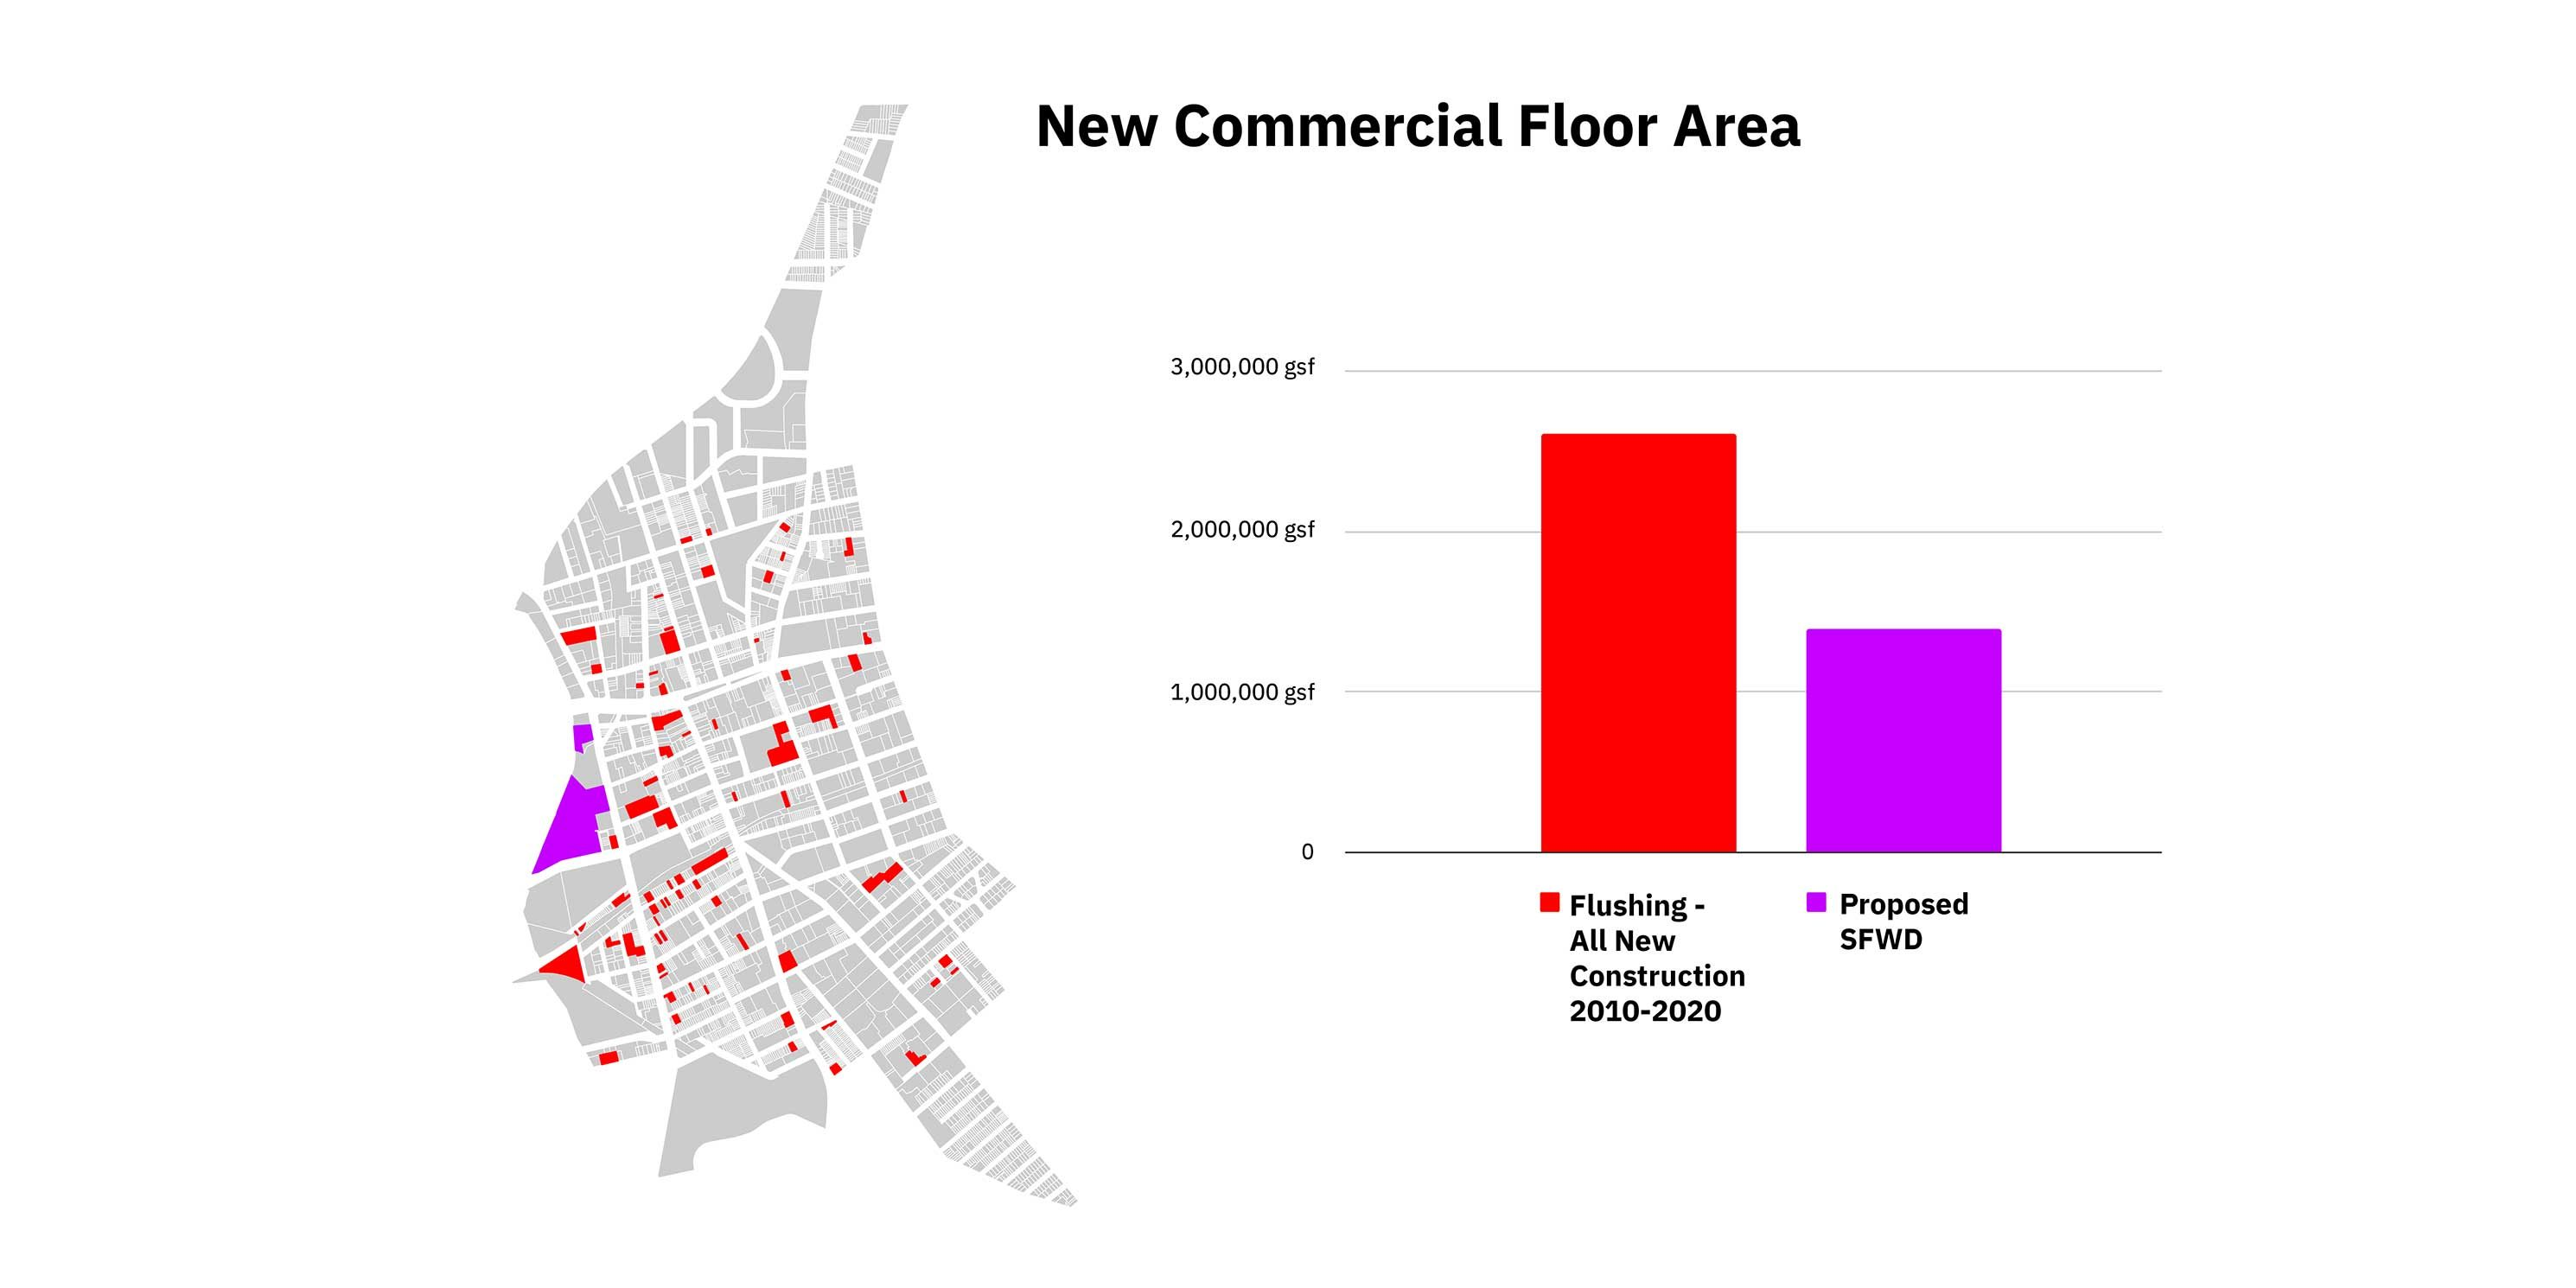 graphic about new commercial floor area in Flushing, Queens